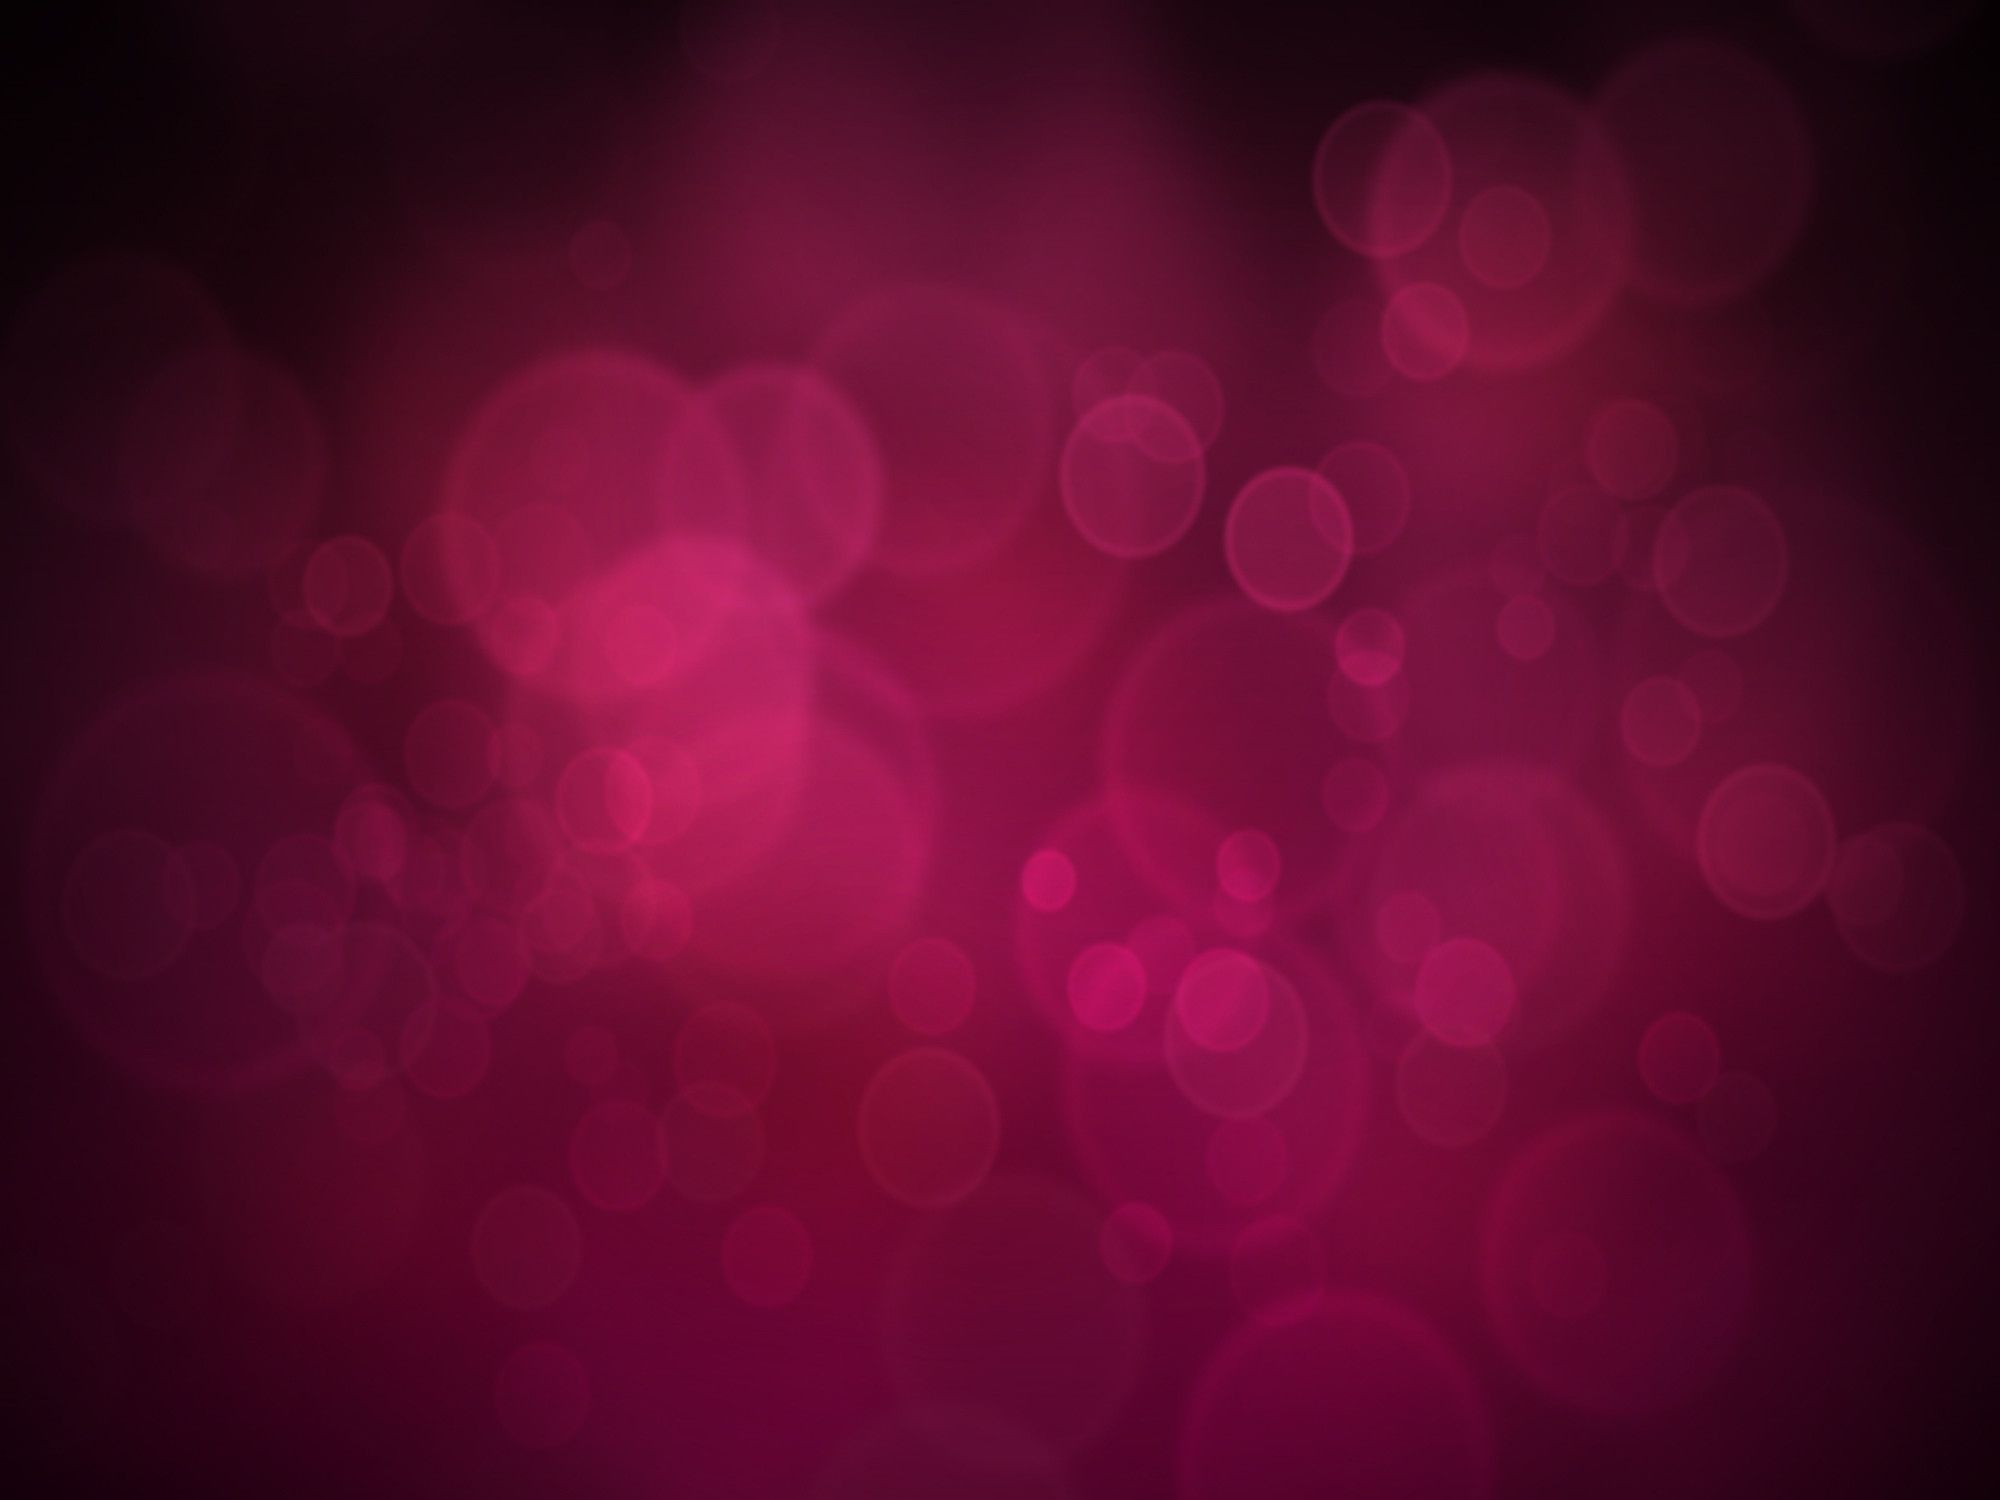 Aesthetic Black And Pink Wallpapers Wallpaper Cave